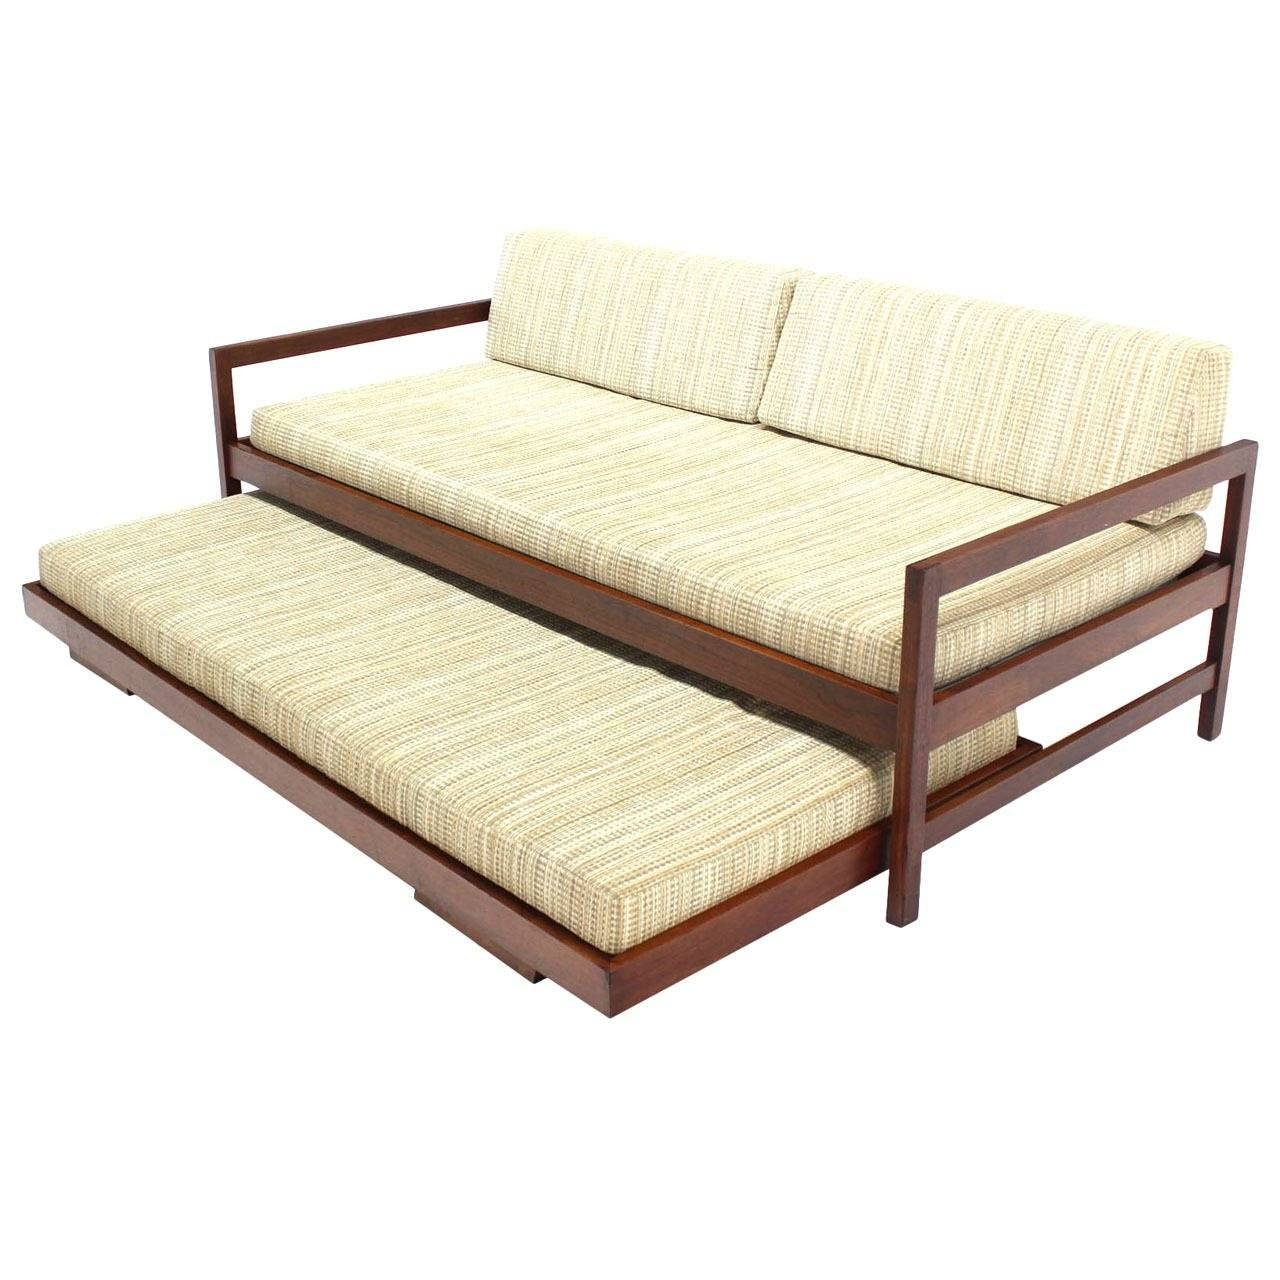 Solid Walnut Frame Mid-Century Modern Trundle, Pull-Out Daybed At within Sofas With Trundle (Image 12 of 15)